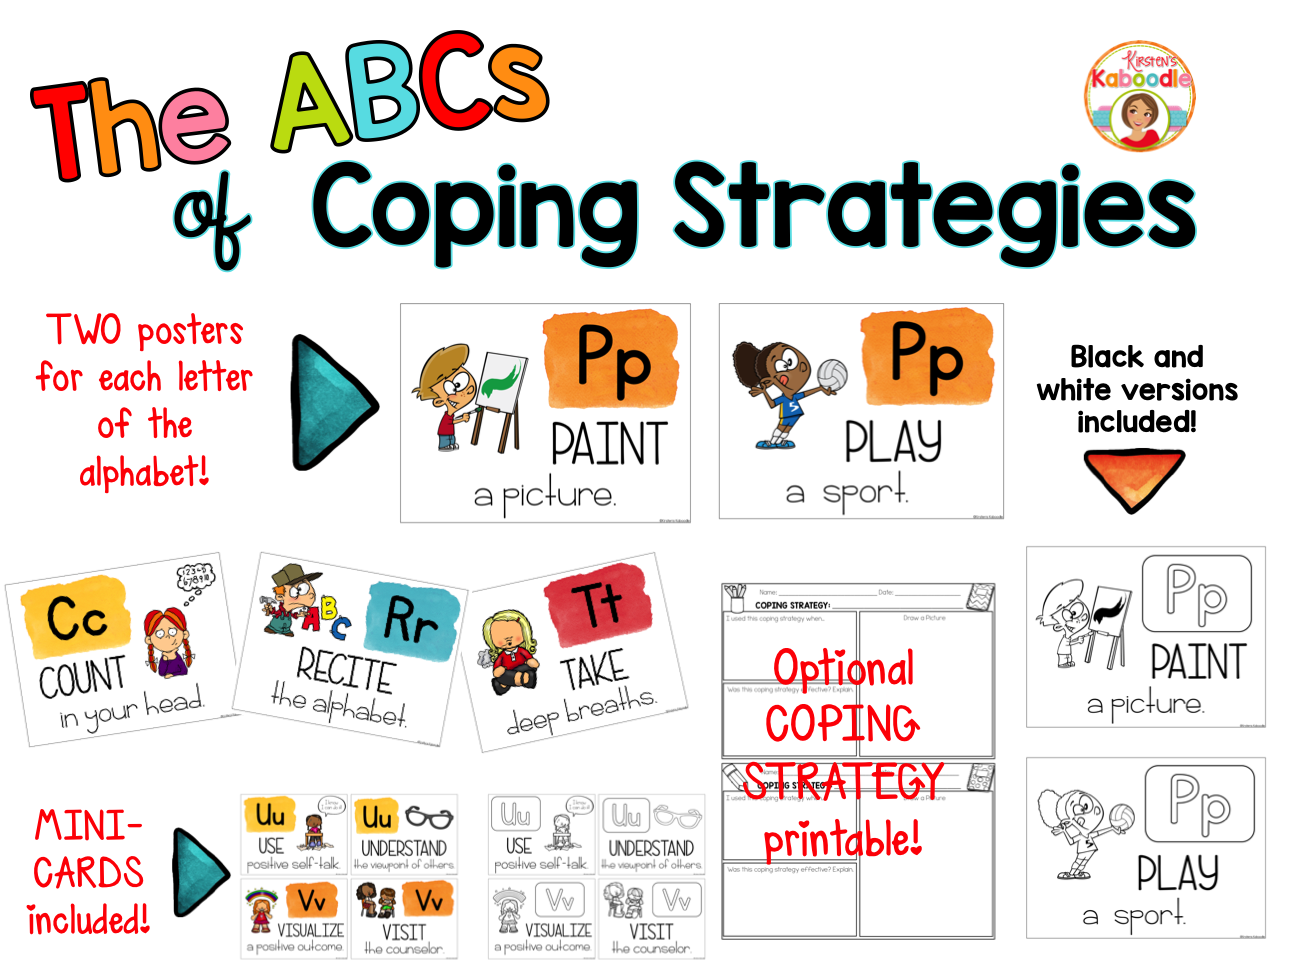 Coping Strategies Posters - The ABCs of Coping Strategies